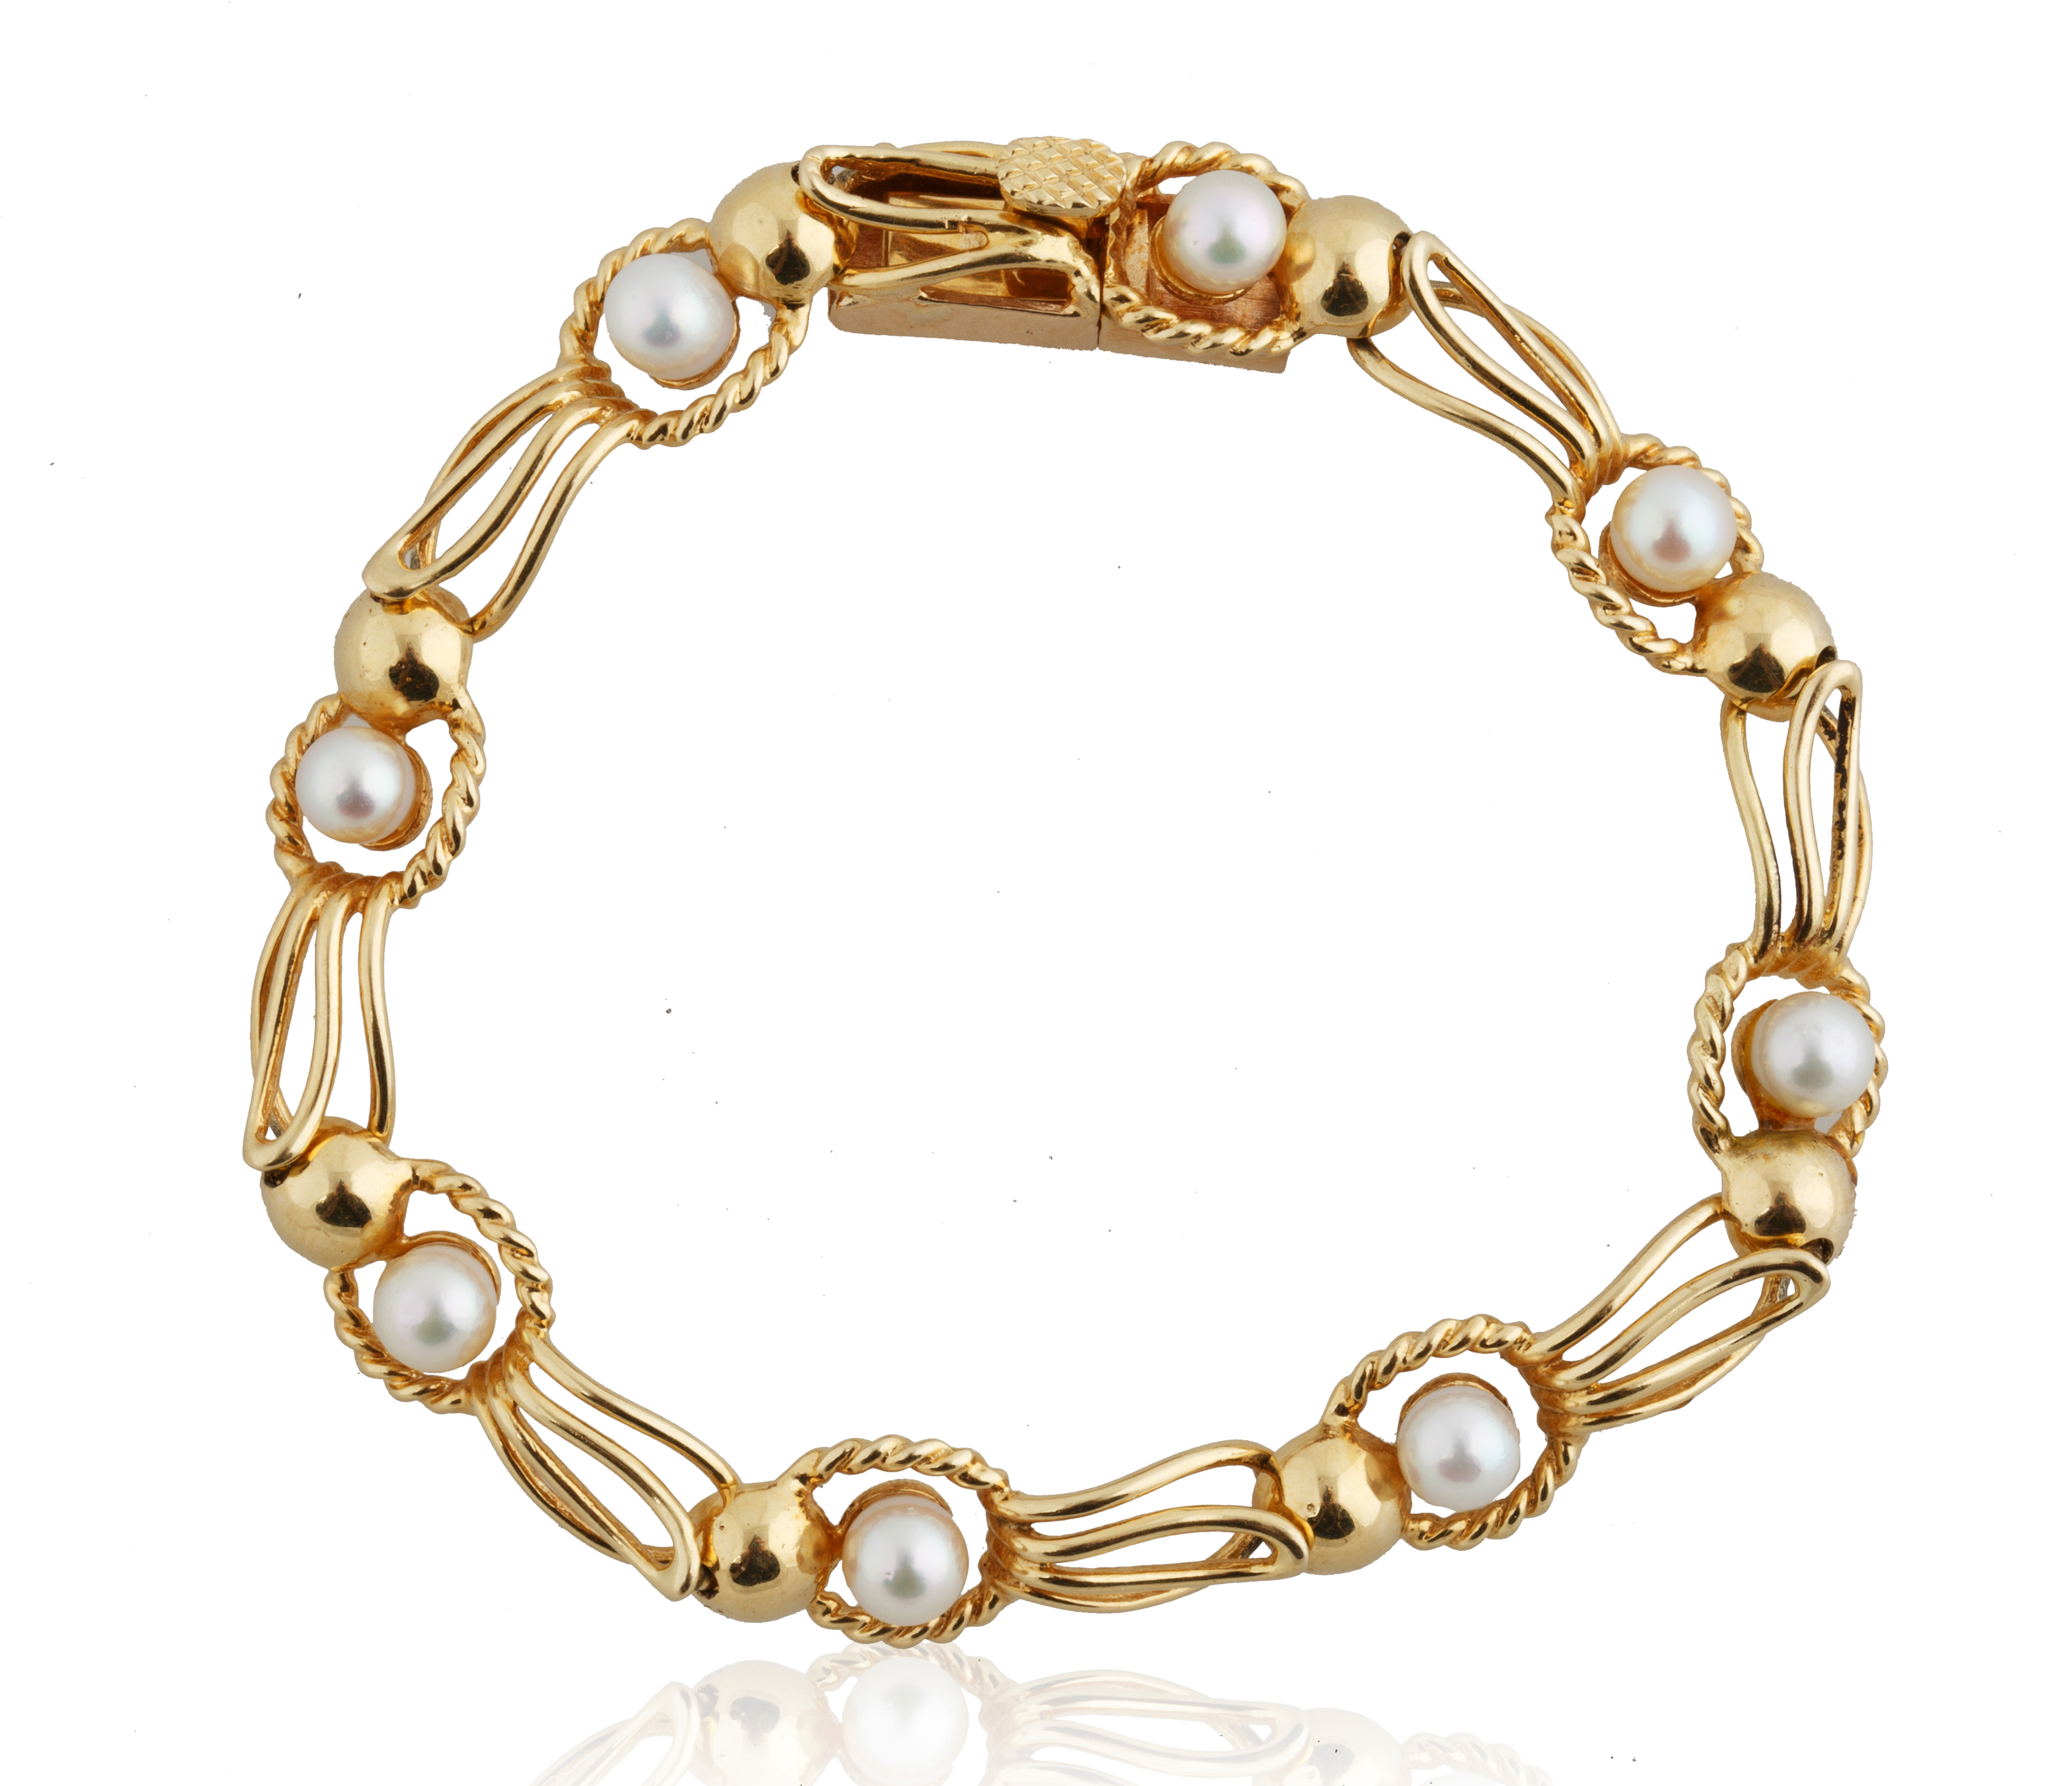 PEARL AND 18KT GOLD BRACELET AND NECKLACE SET - Image 5 of 8